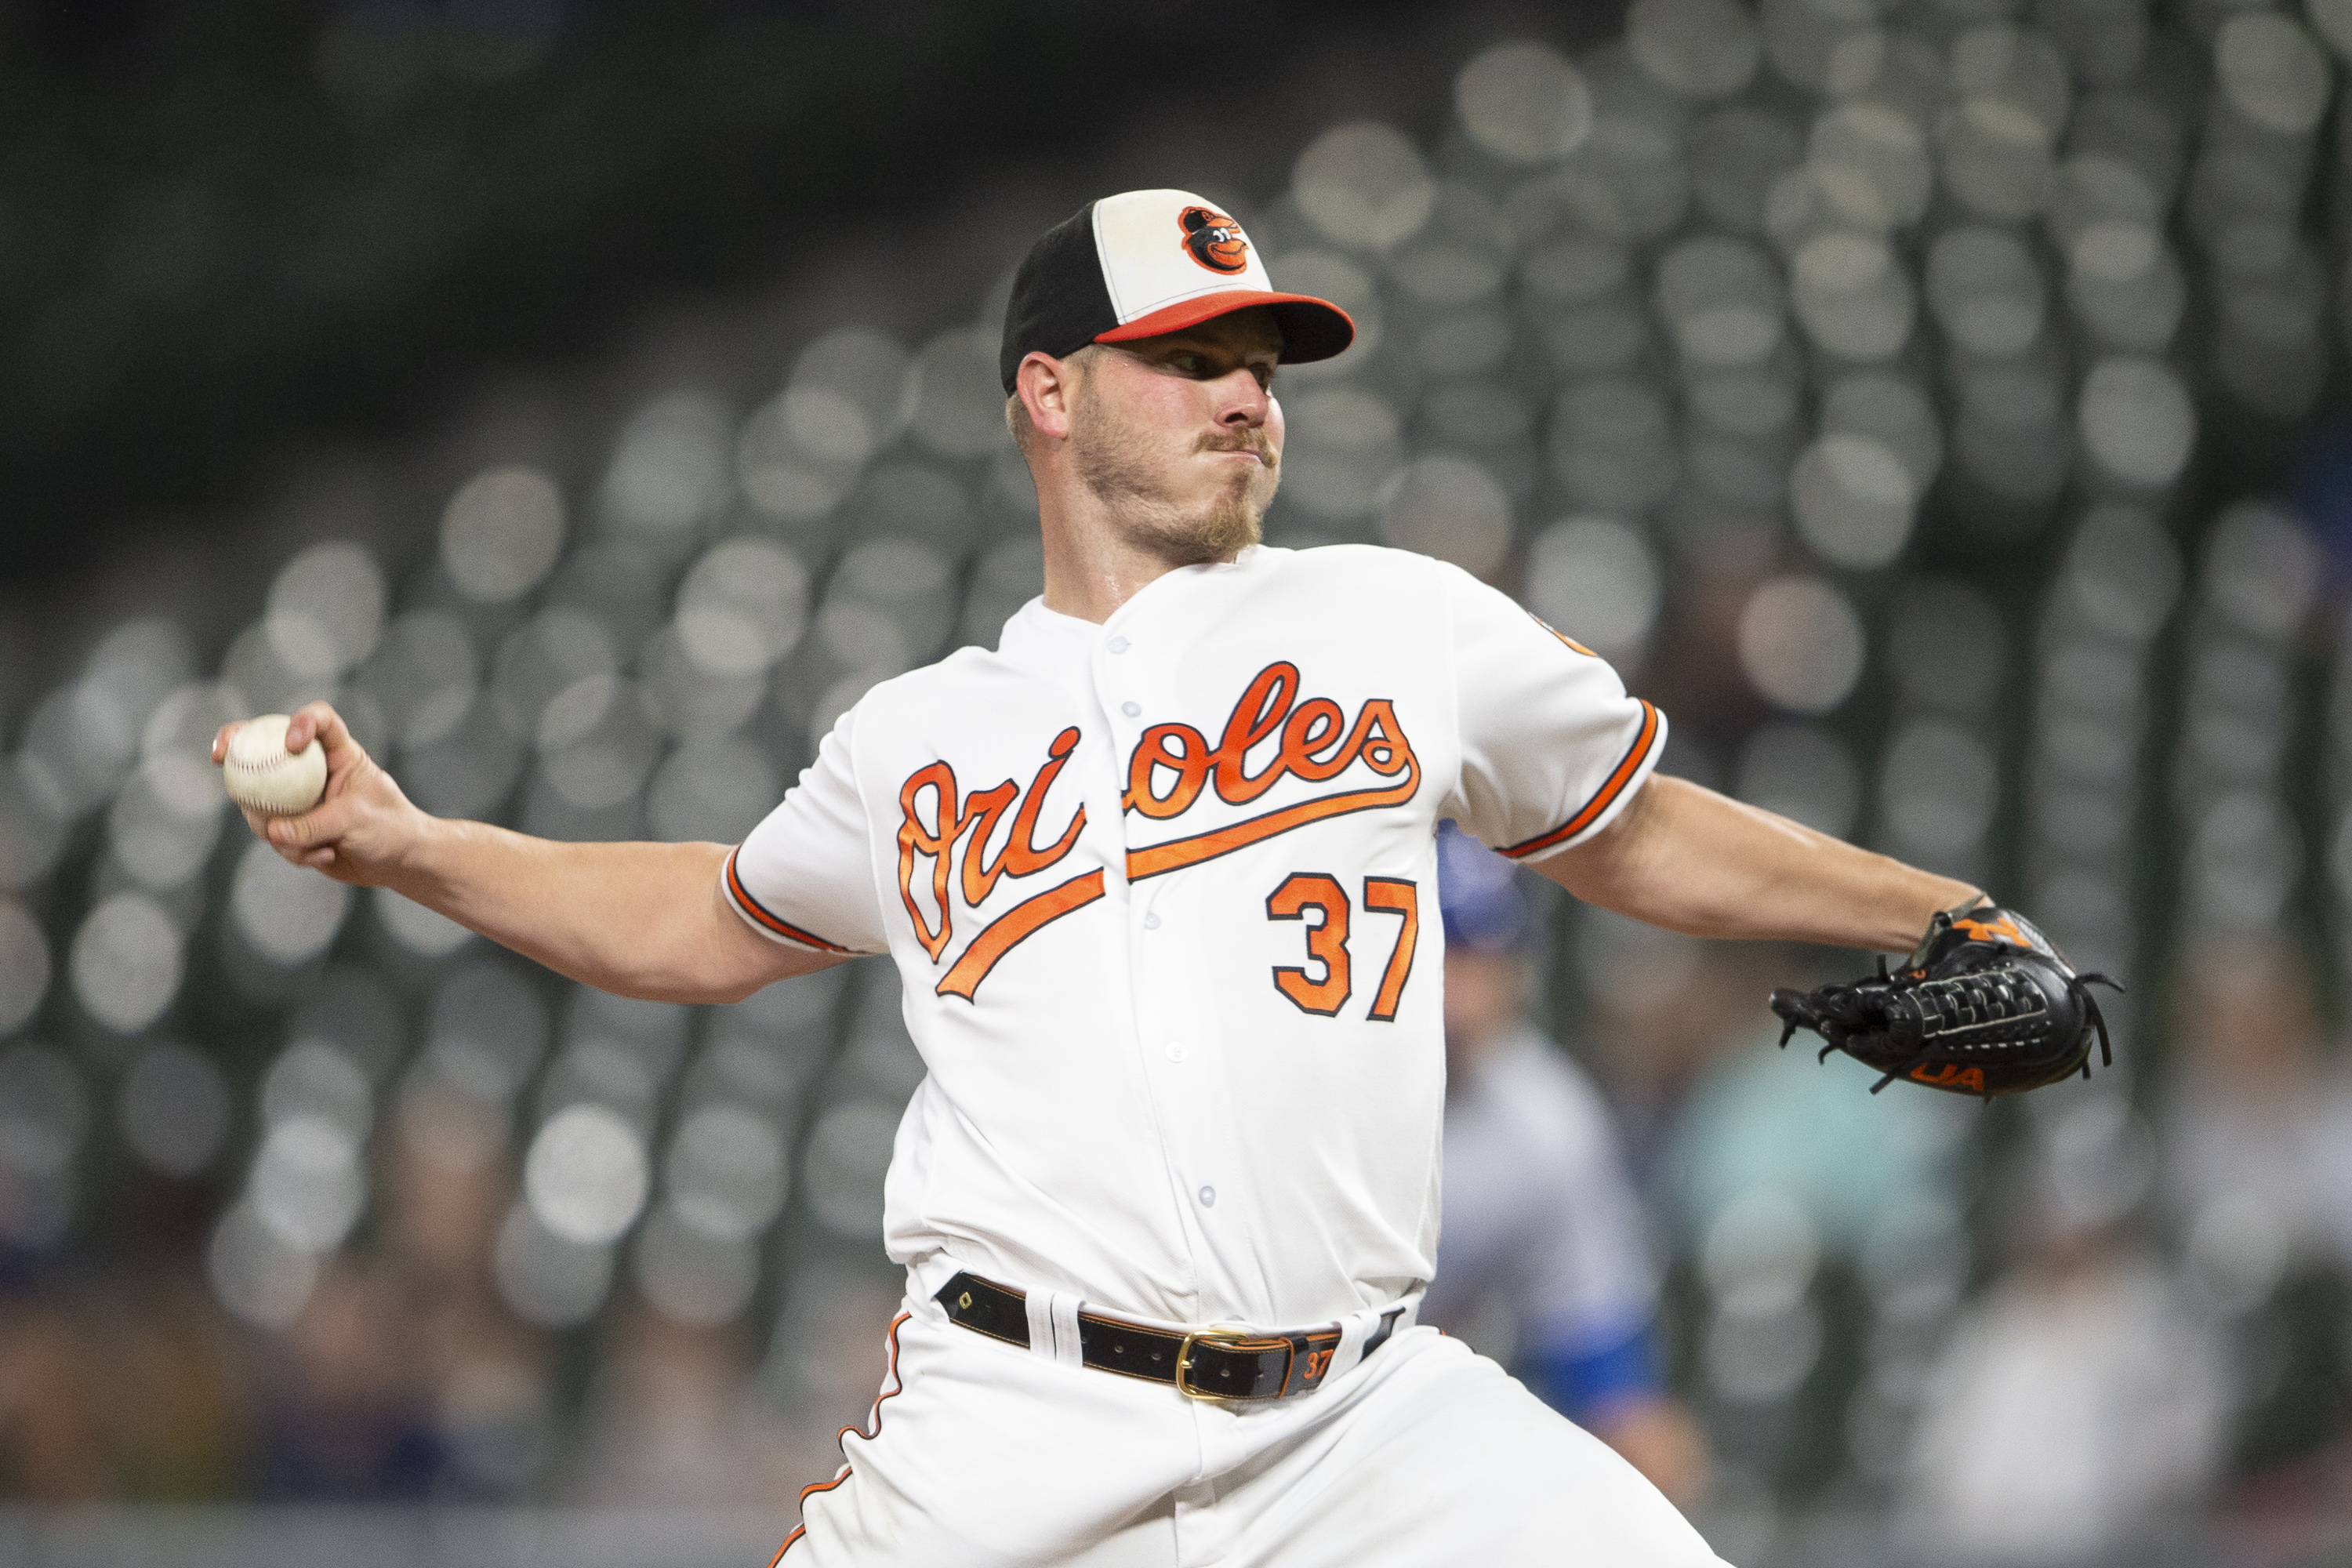 Angels try to improve starting rotation with acquisition of Dylan Bundy